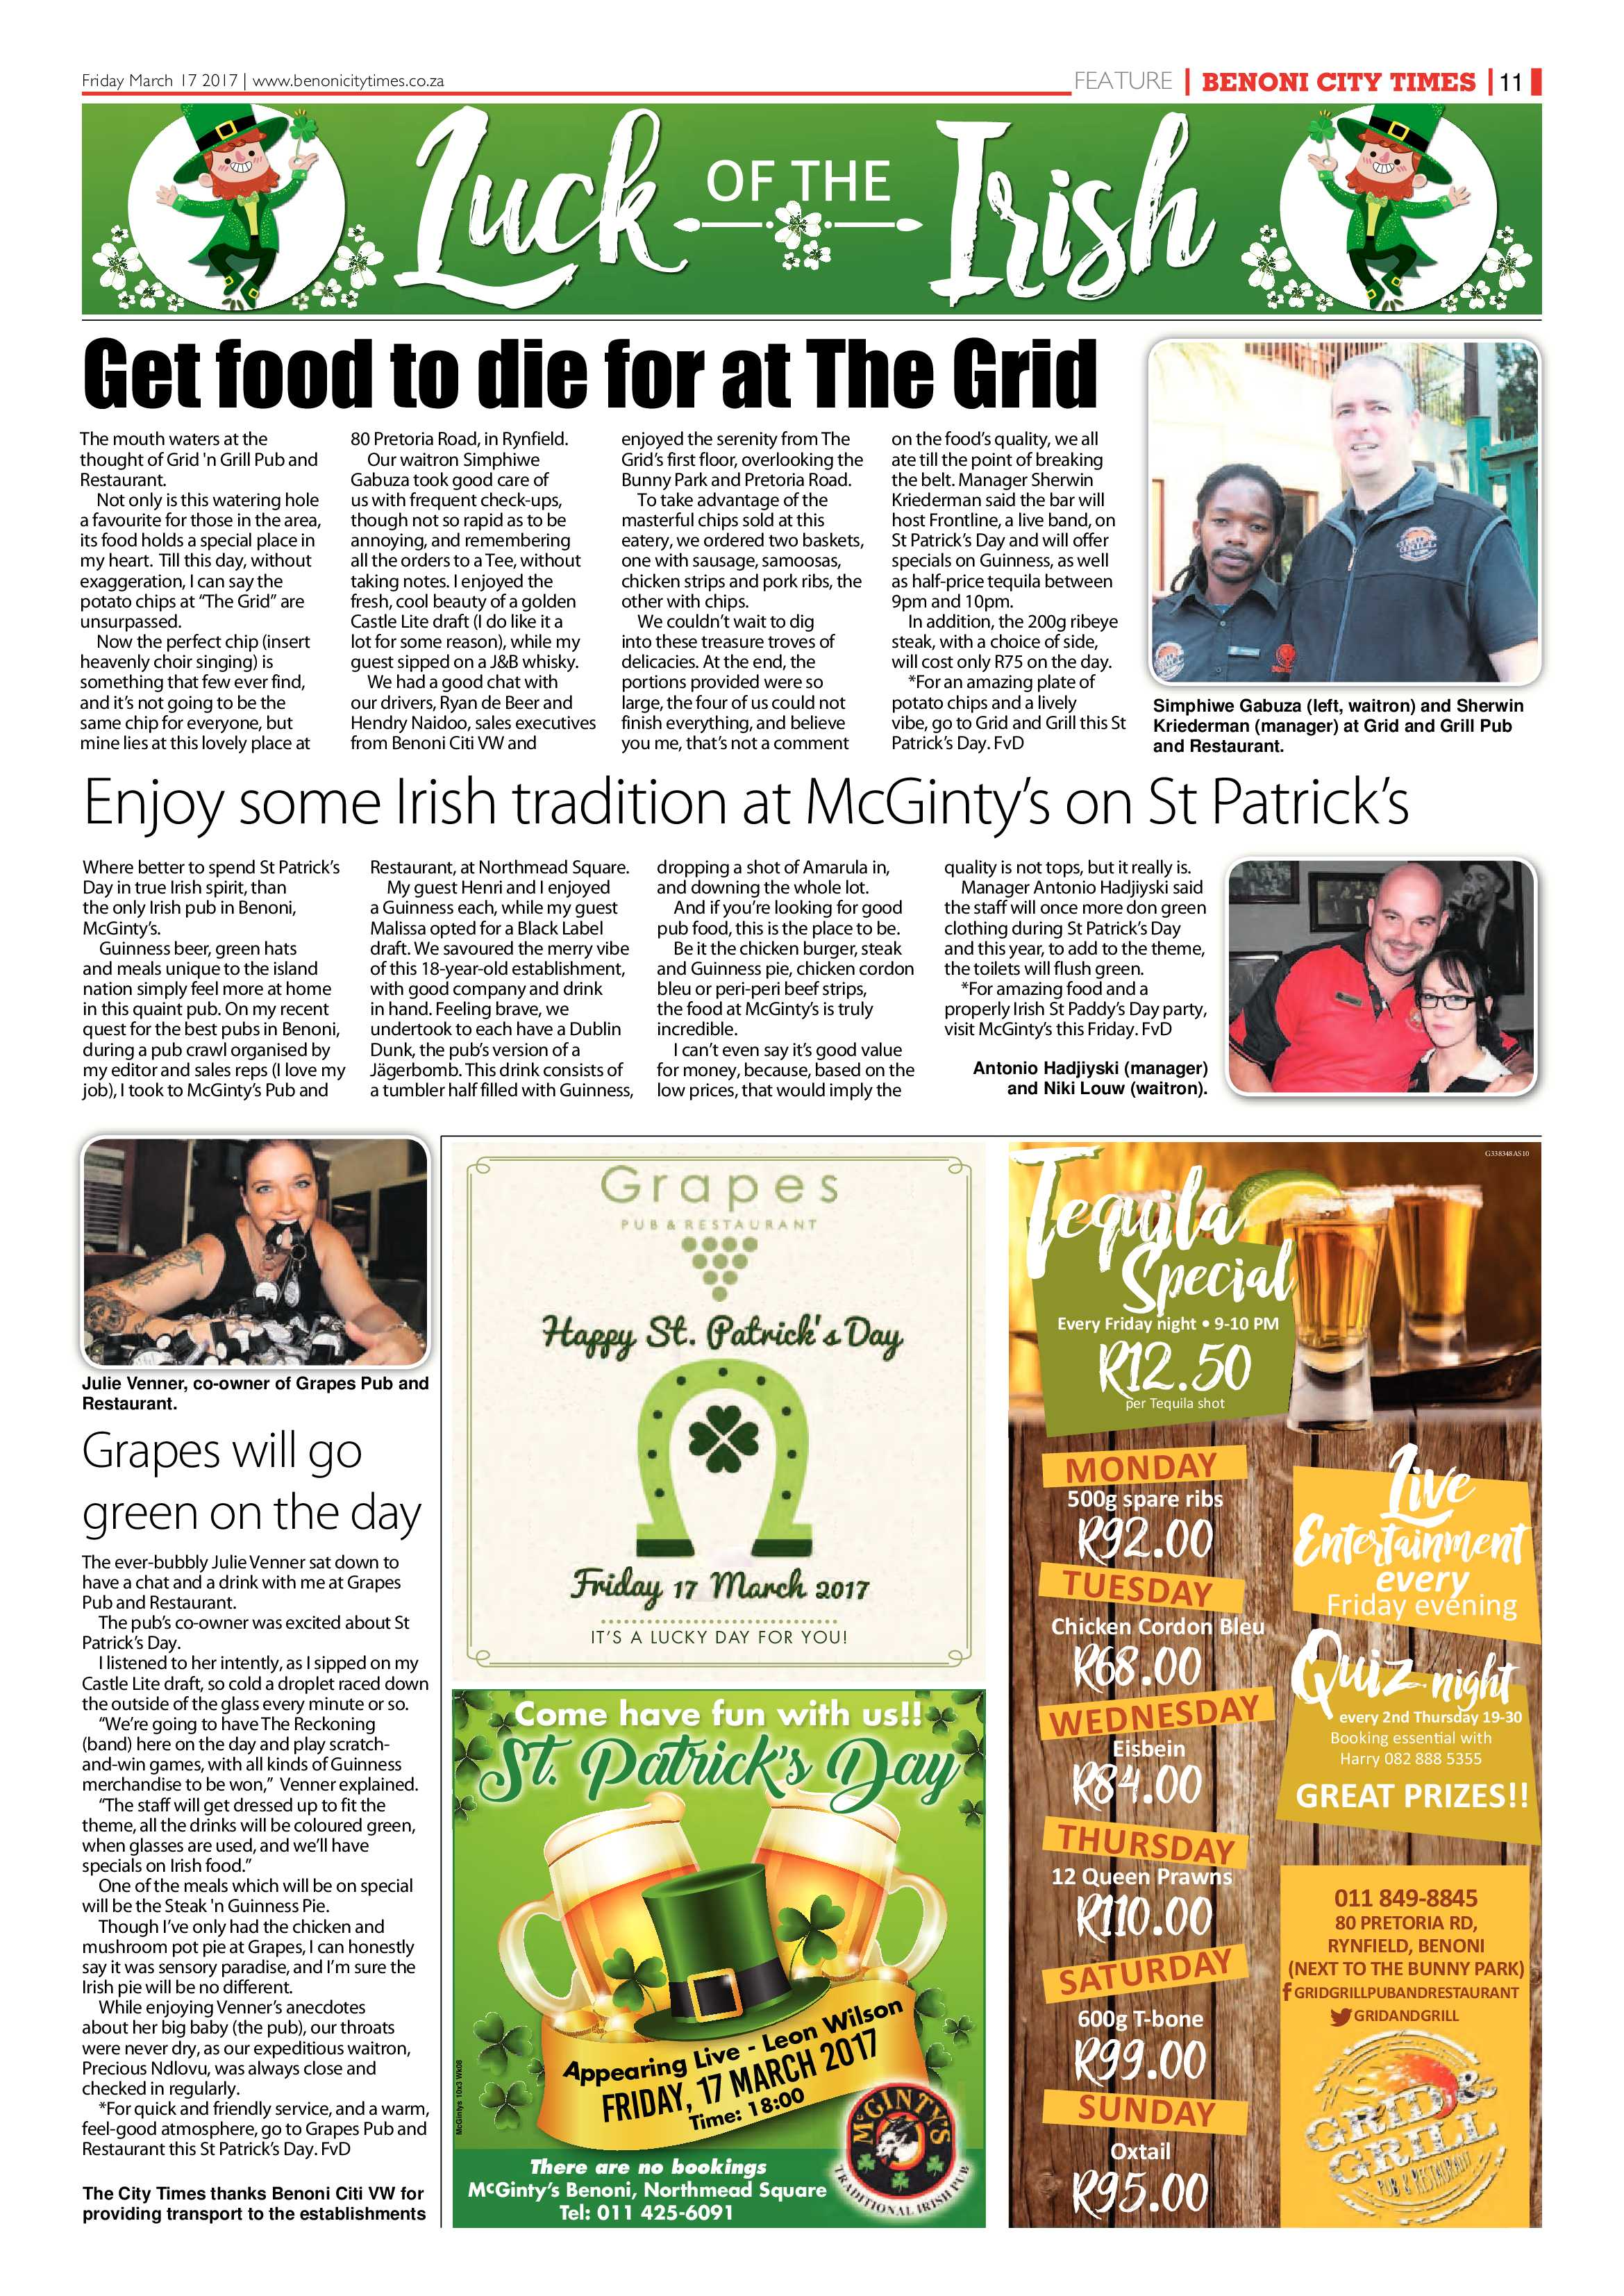 benoni-city-times-16-march-2017-epapers-page-11